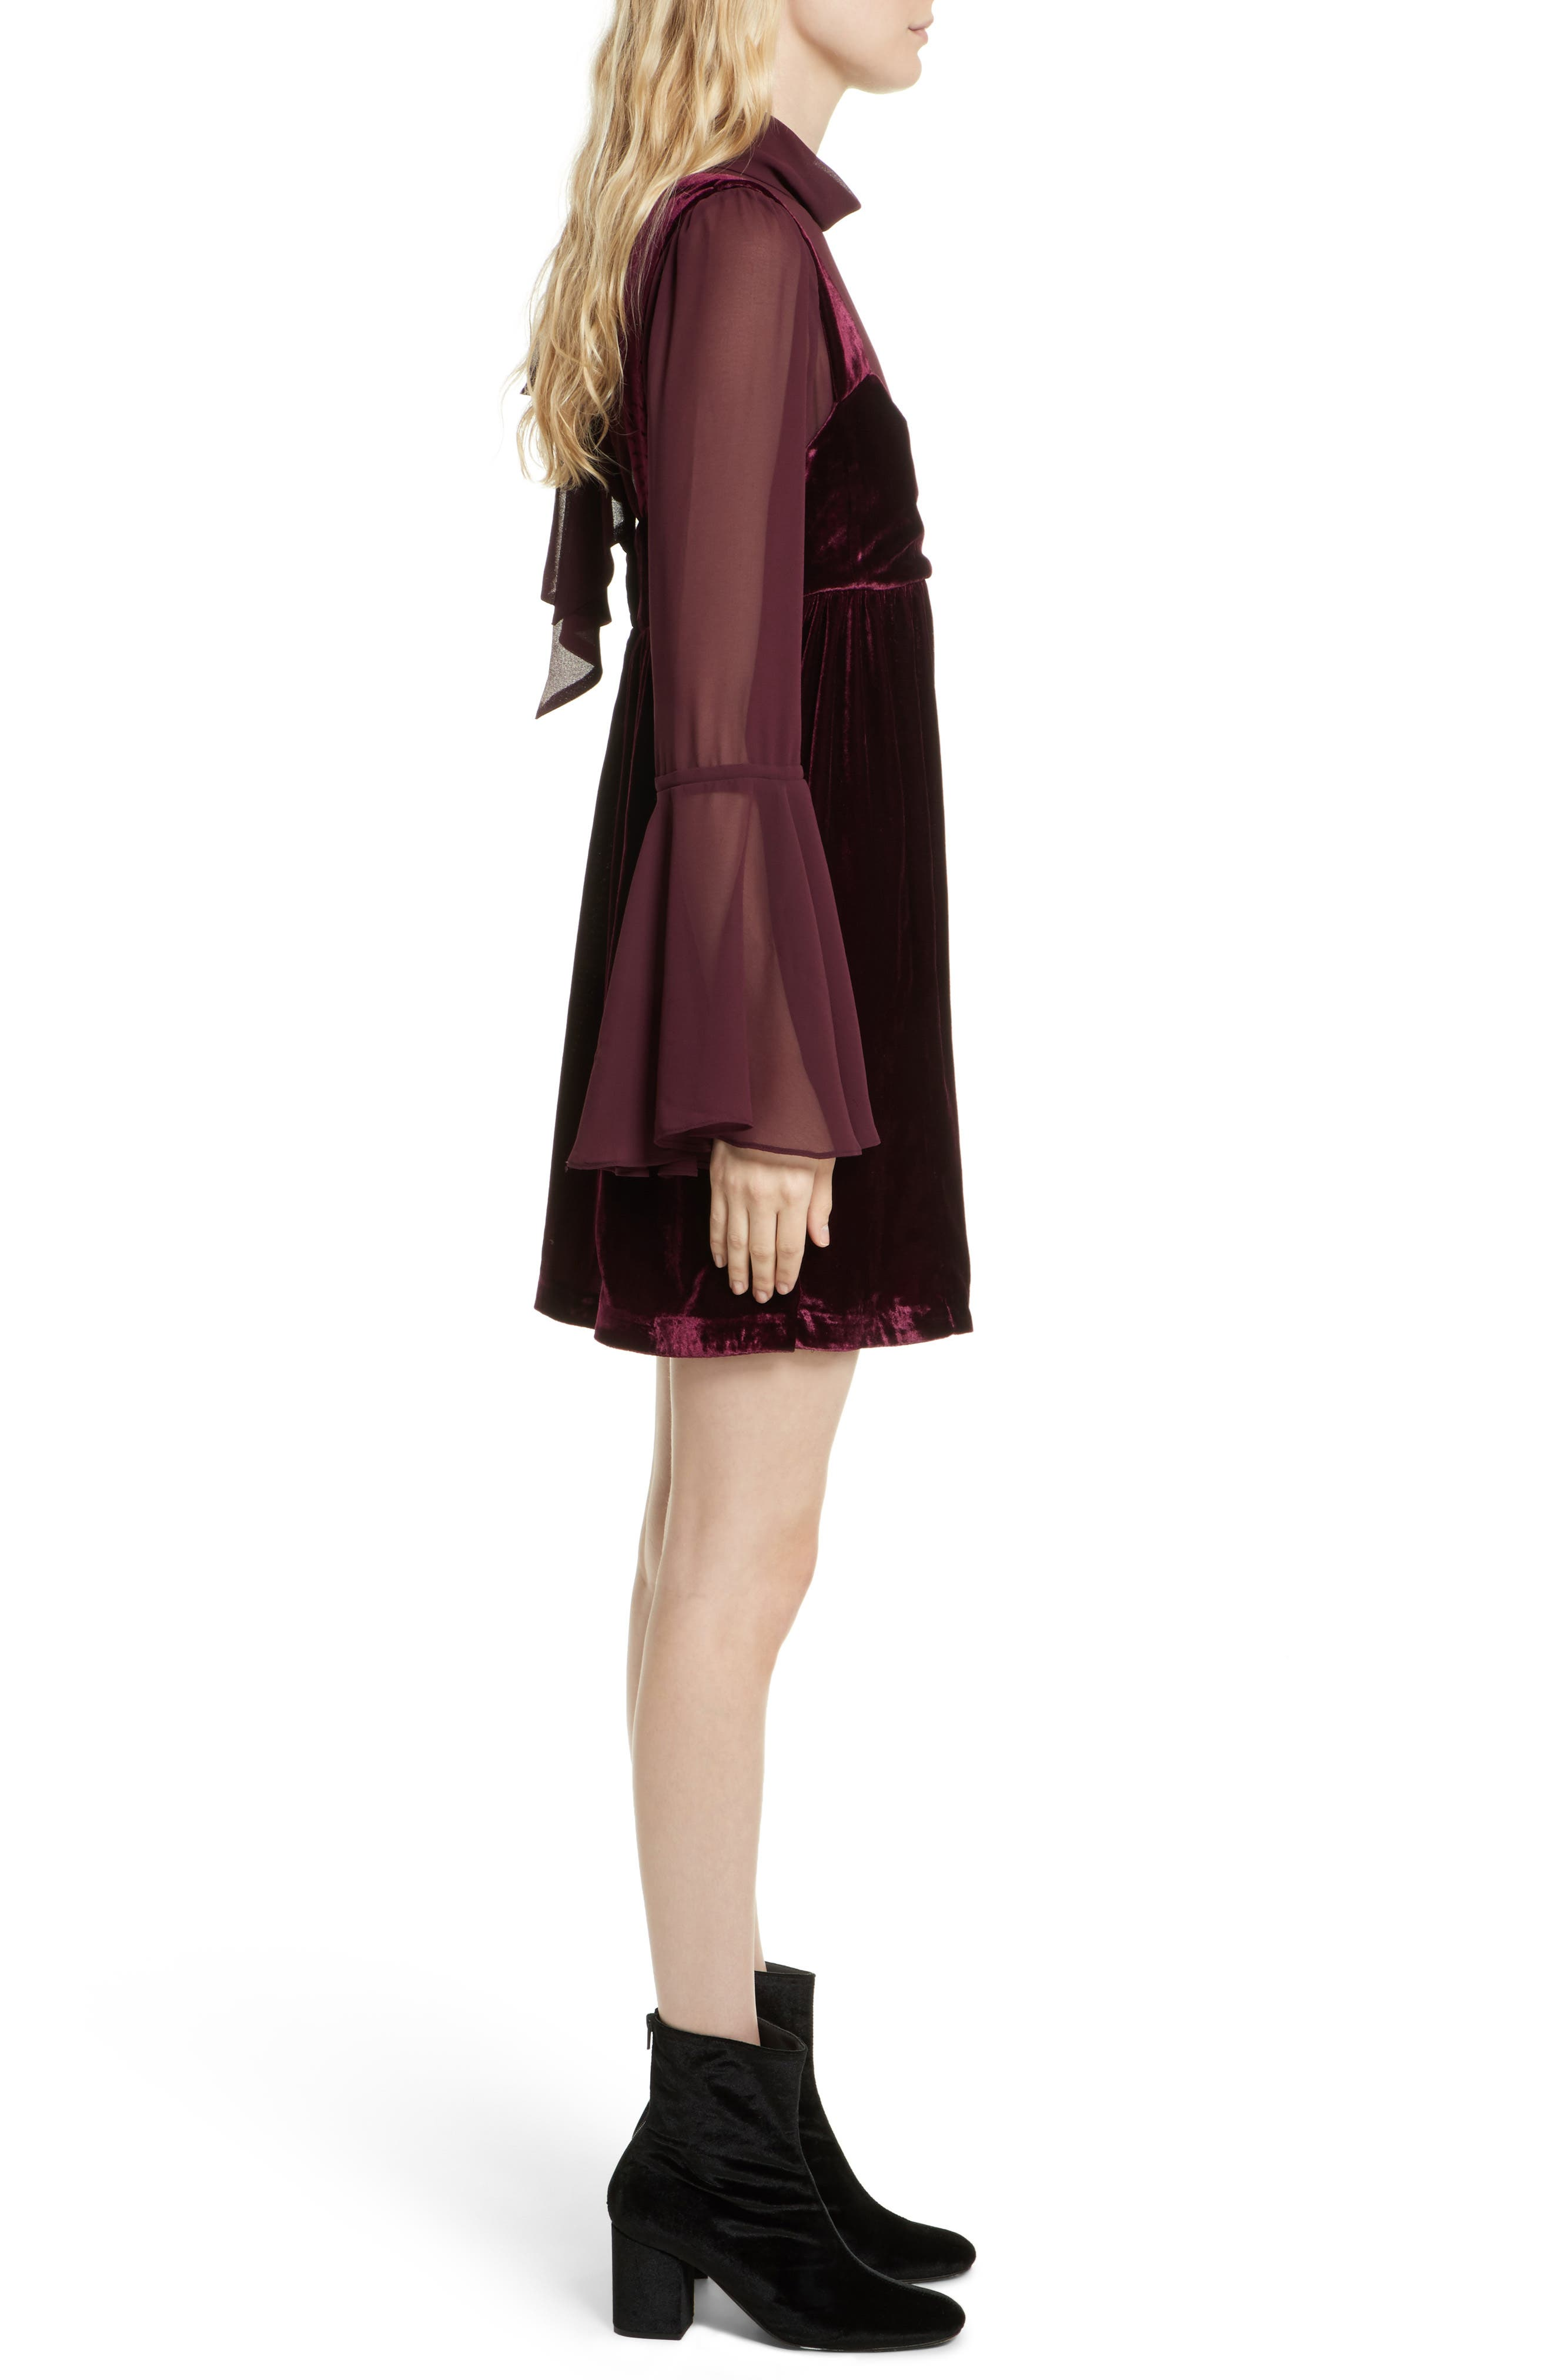 Counting Stars Minidress,                             Alternate thumbnail 3, color,                             Wine